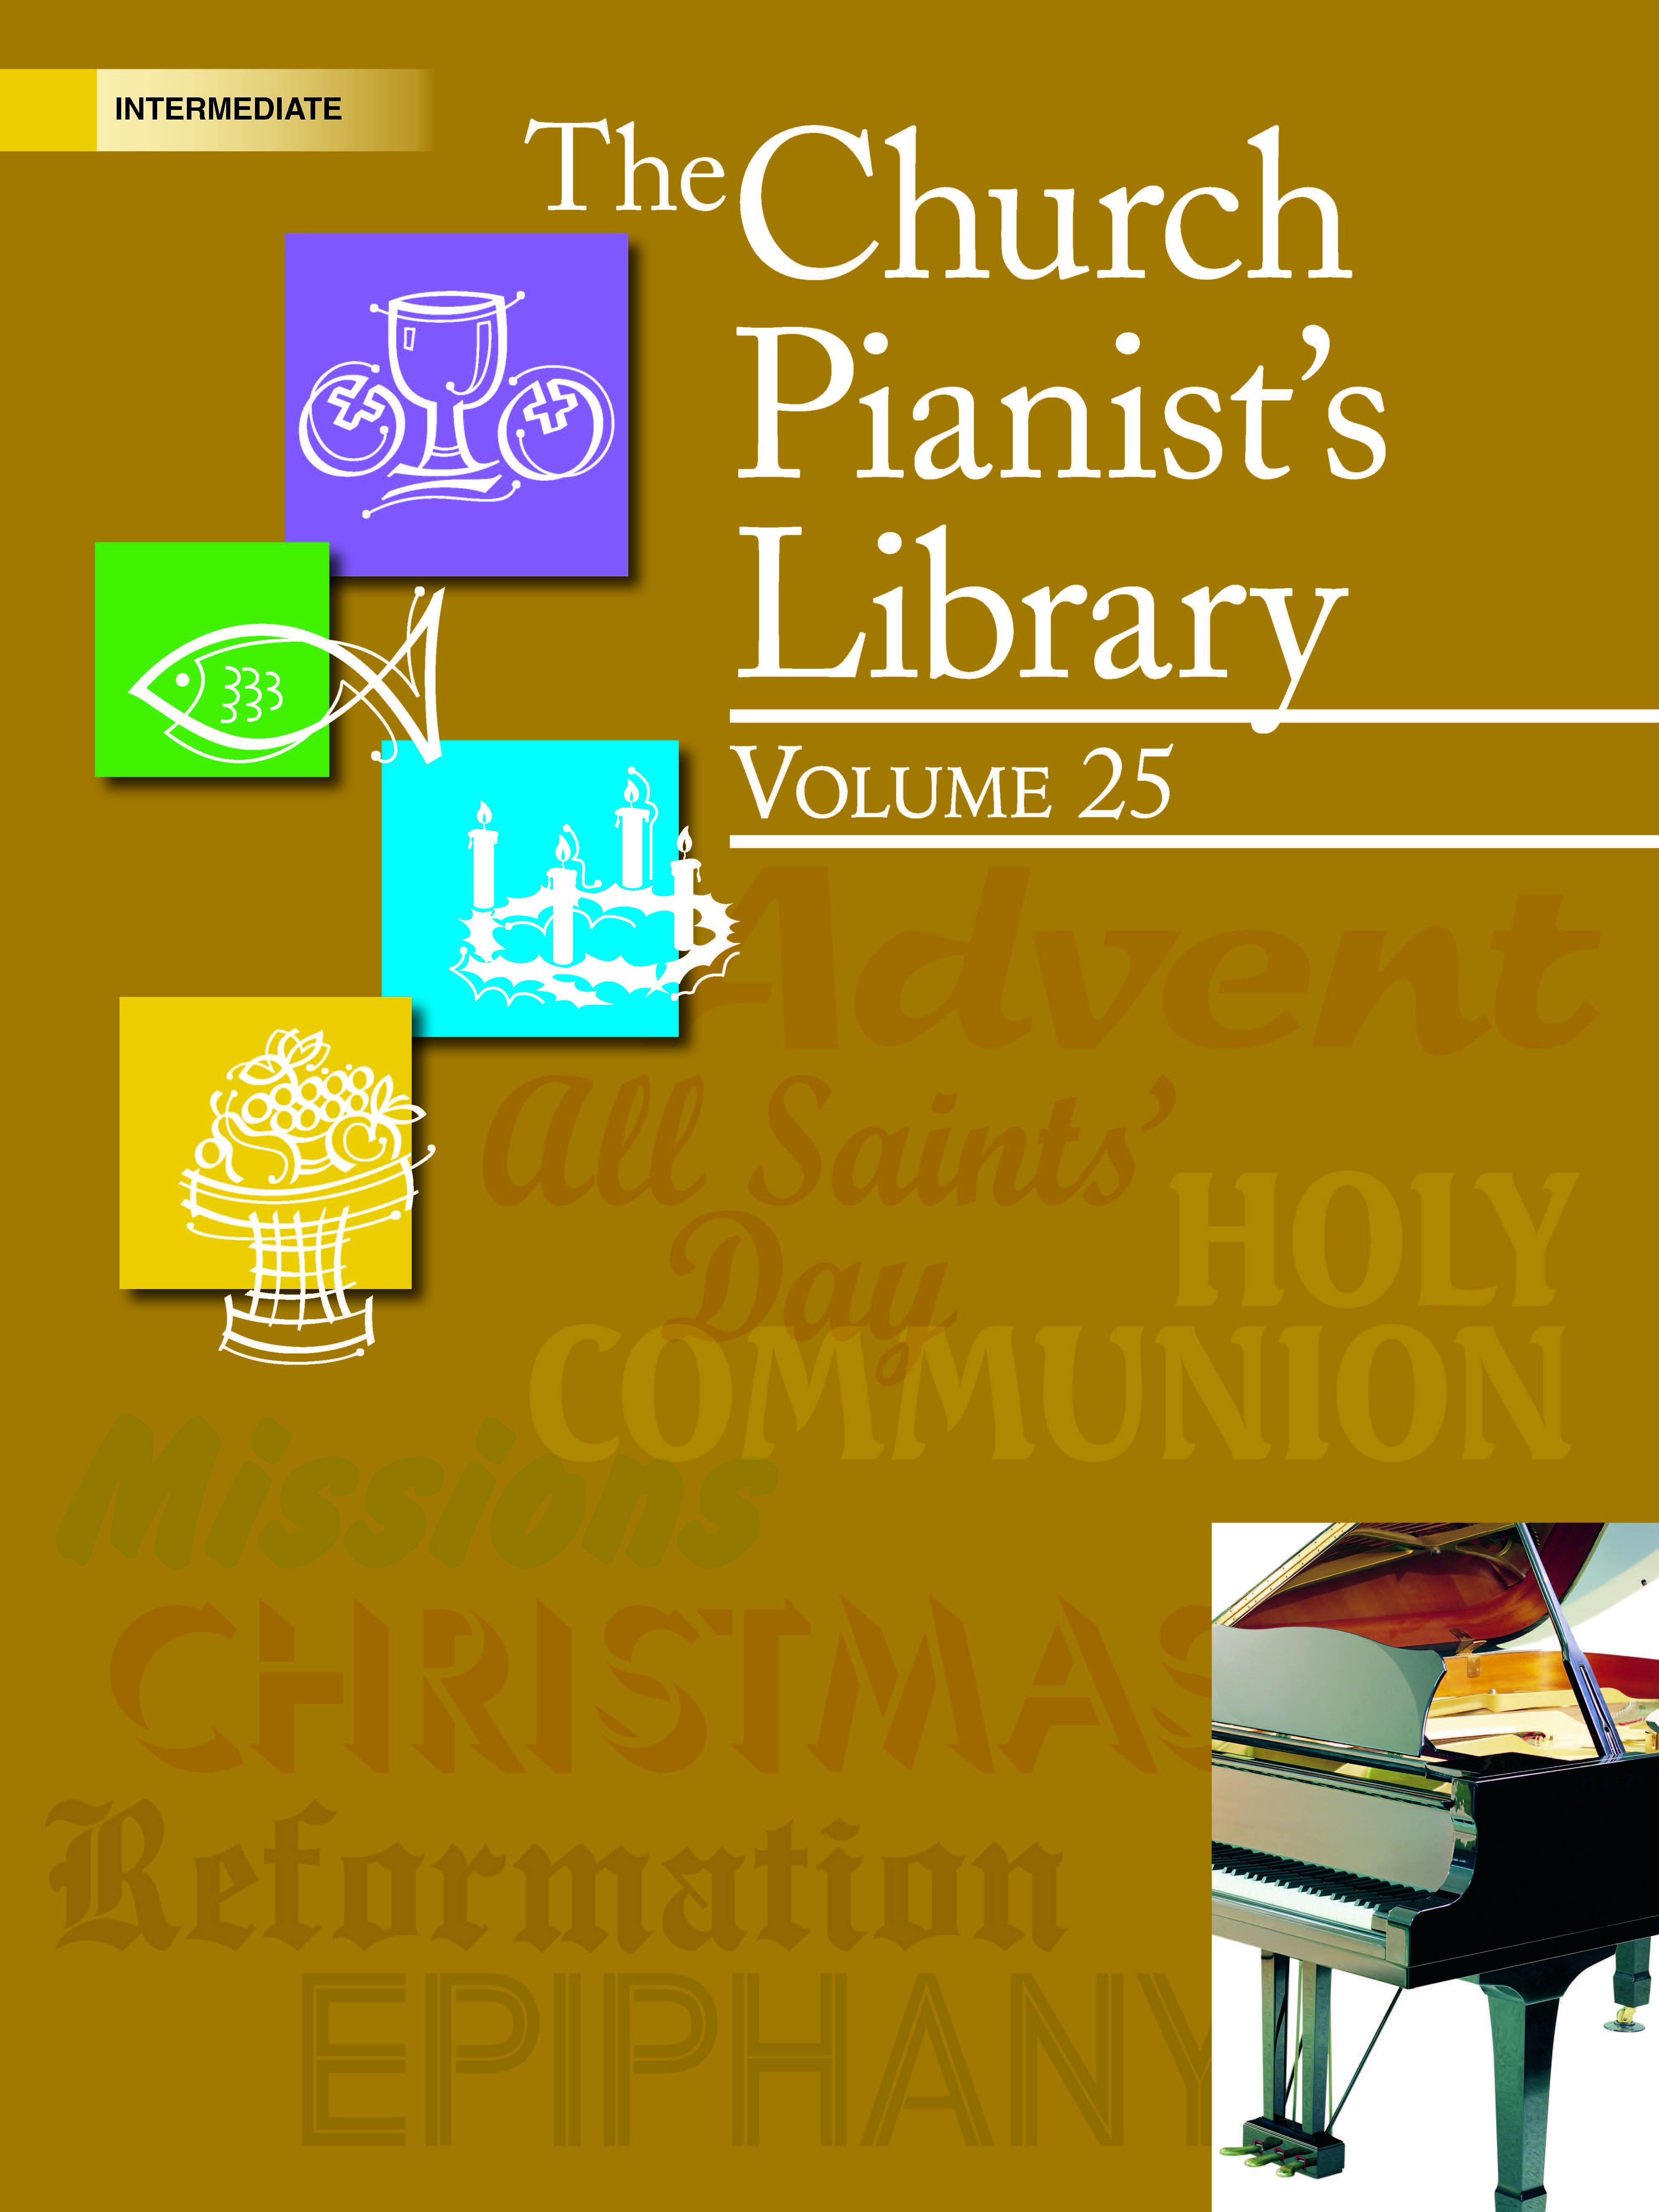 The Church Pianist's Library, Volume 25